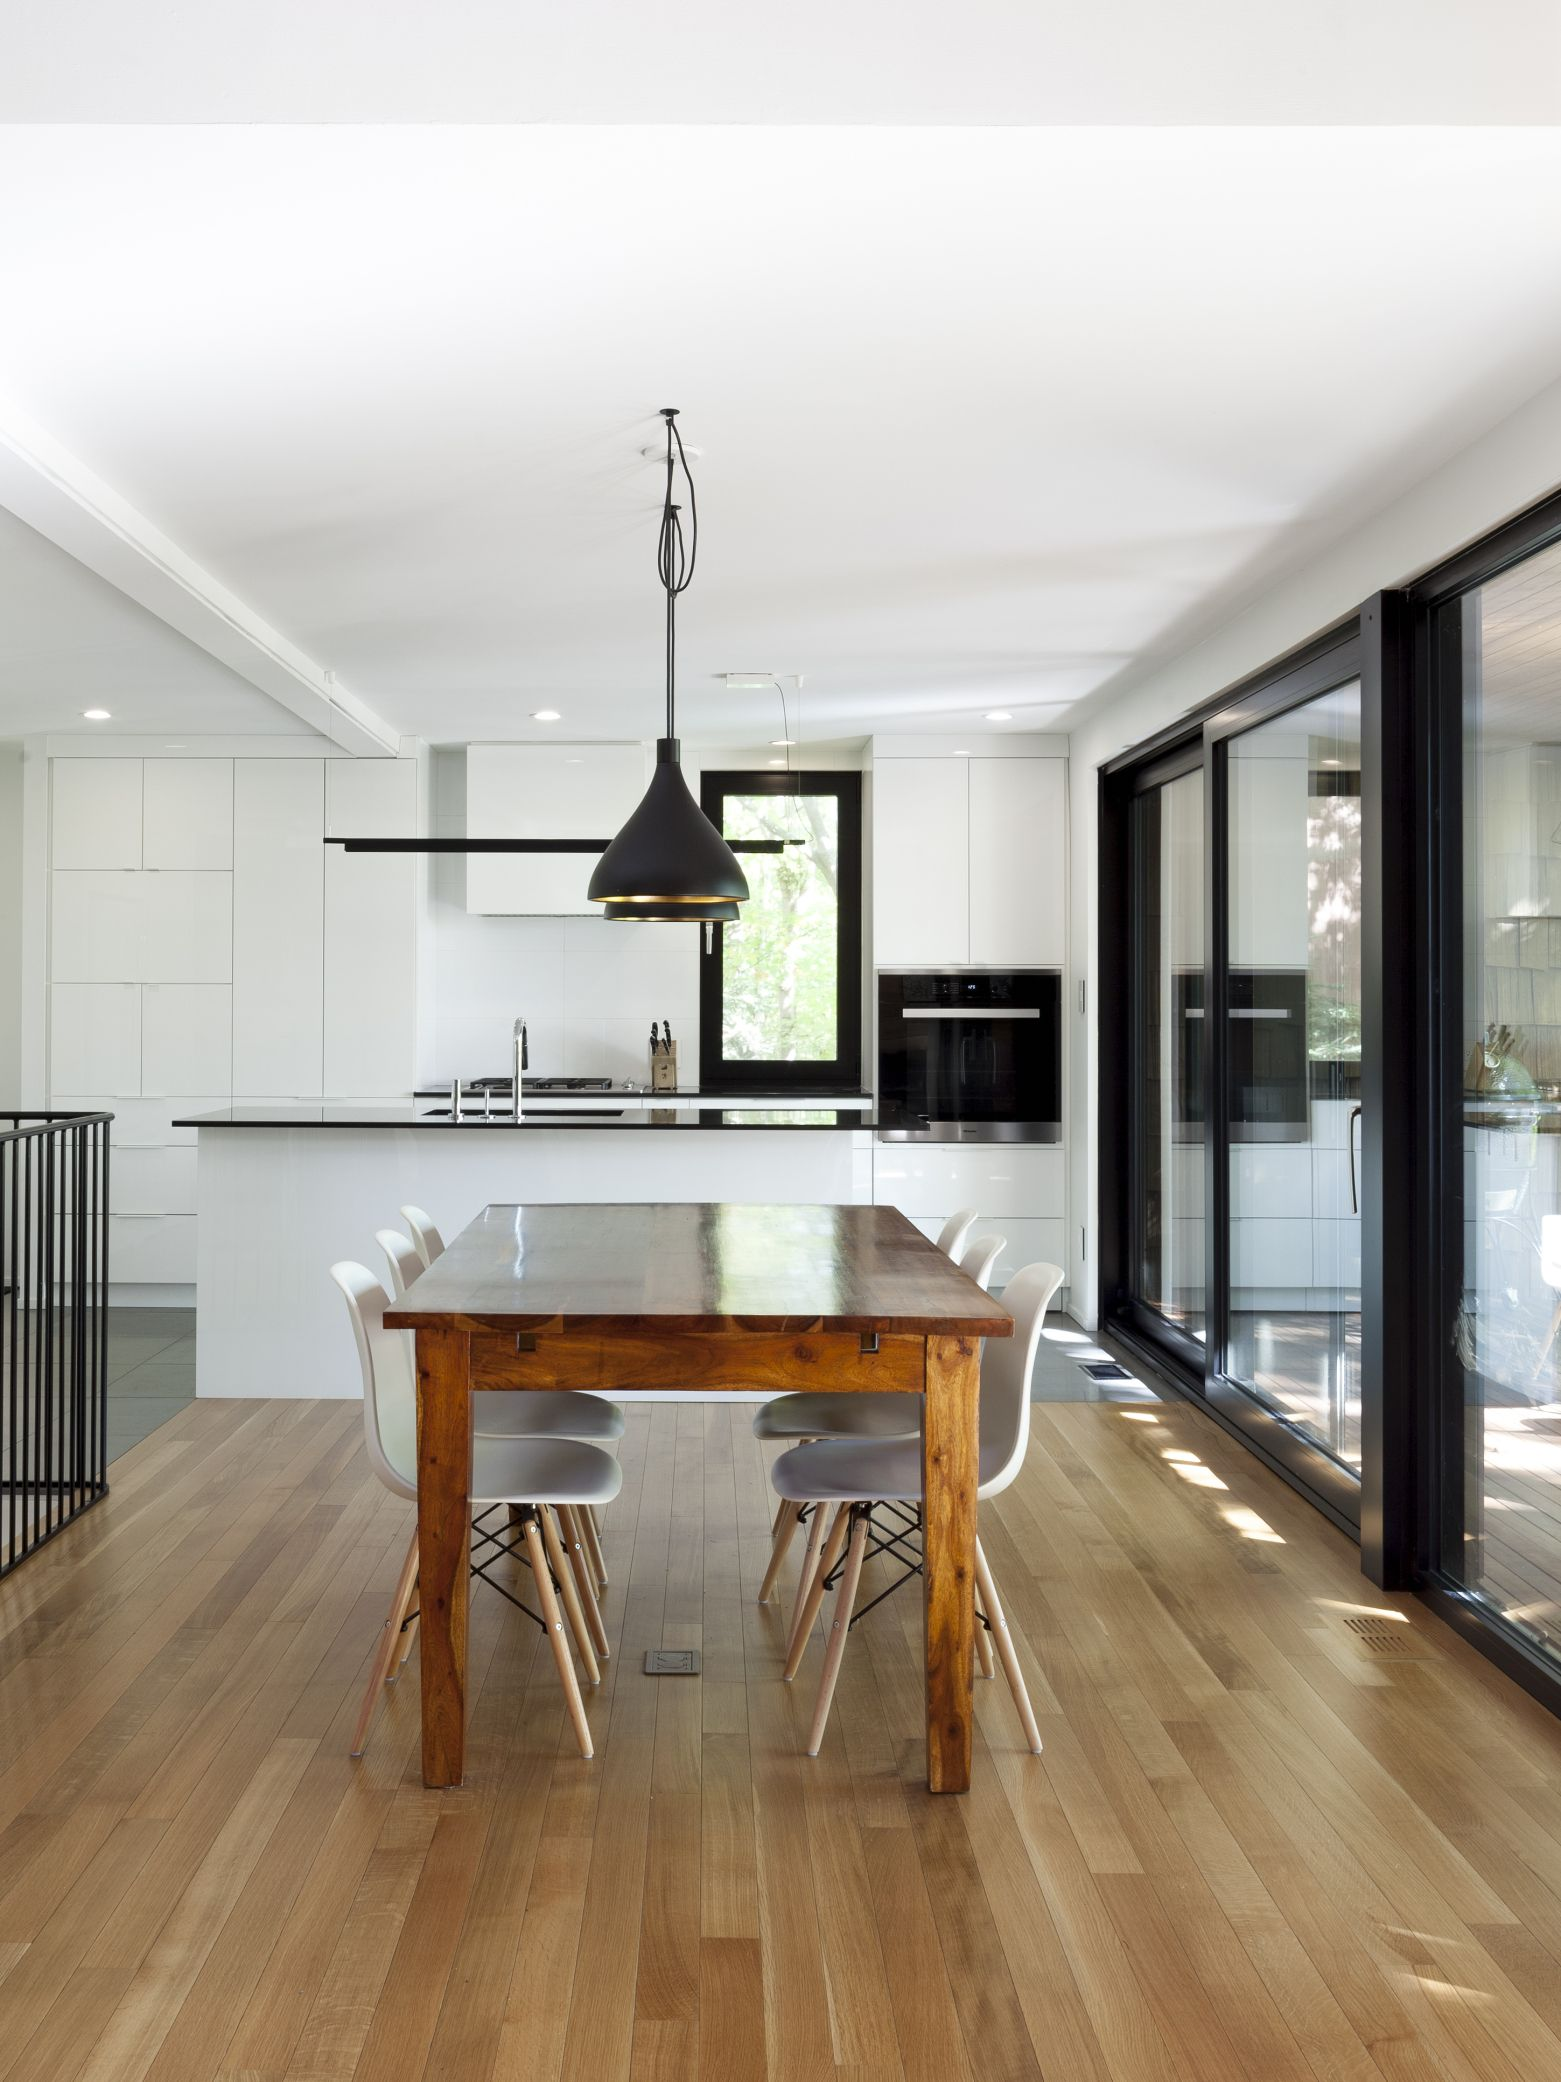 Dining Room And Kitchen Interior Design, White Walls, Wood Floors,